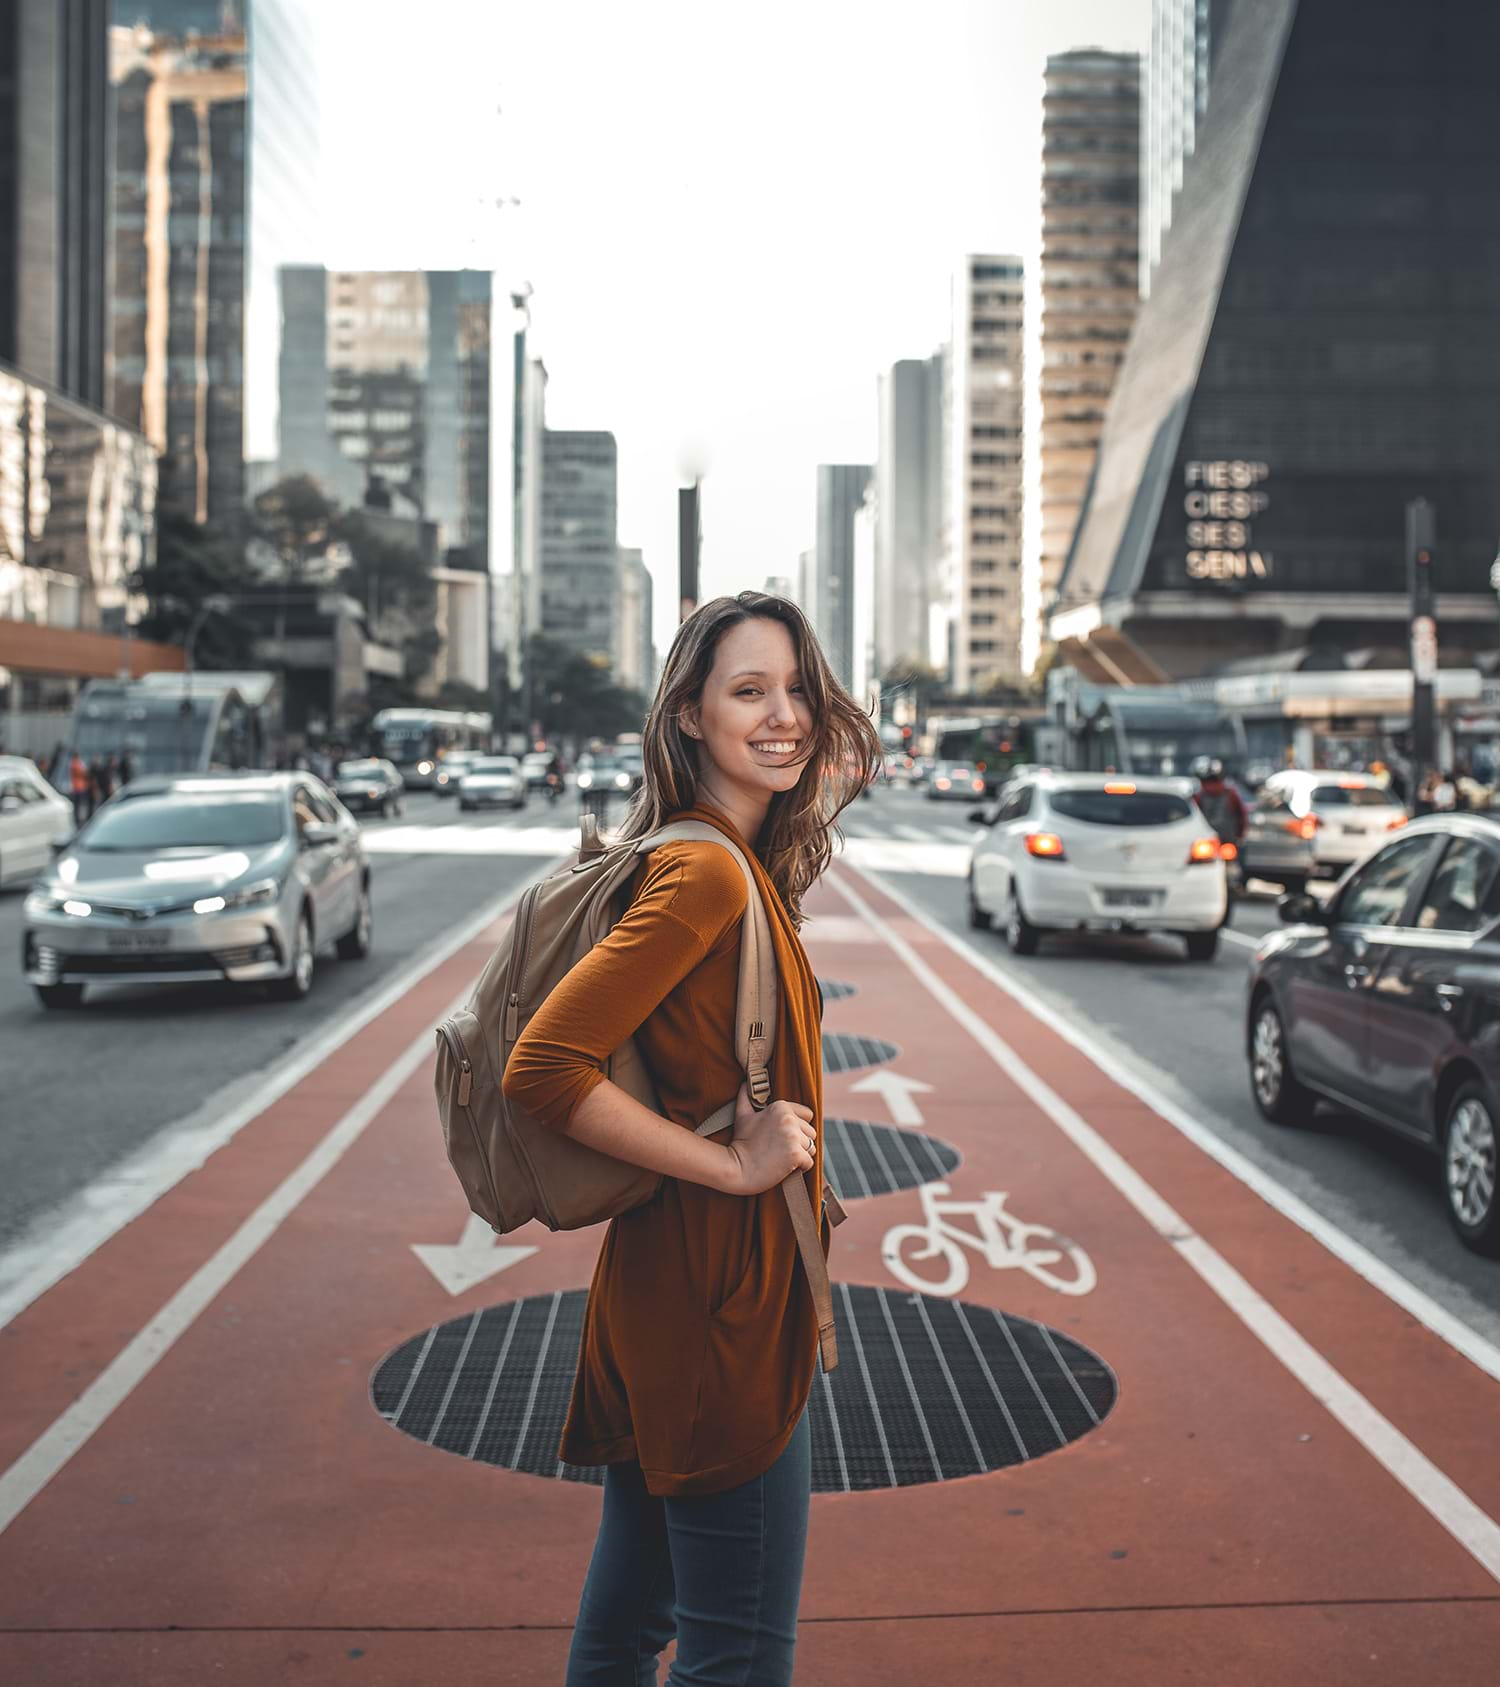 21 Travel Safety Tips for Women Traveling Alone | Berkshire Hathaway Travel Protection